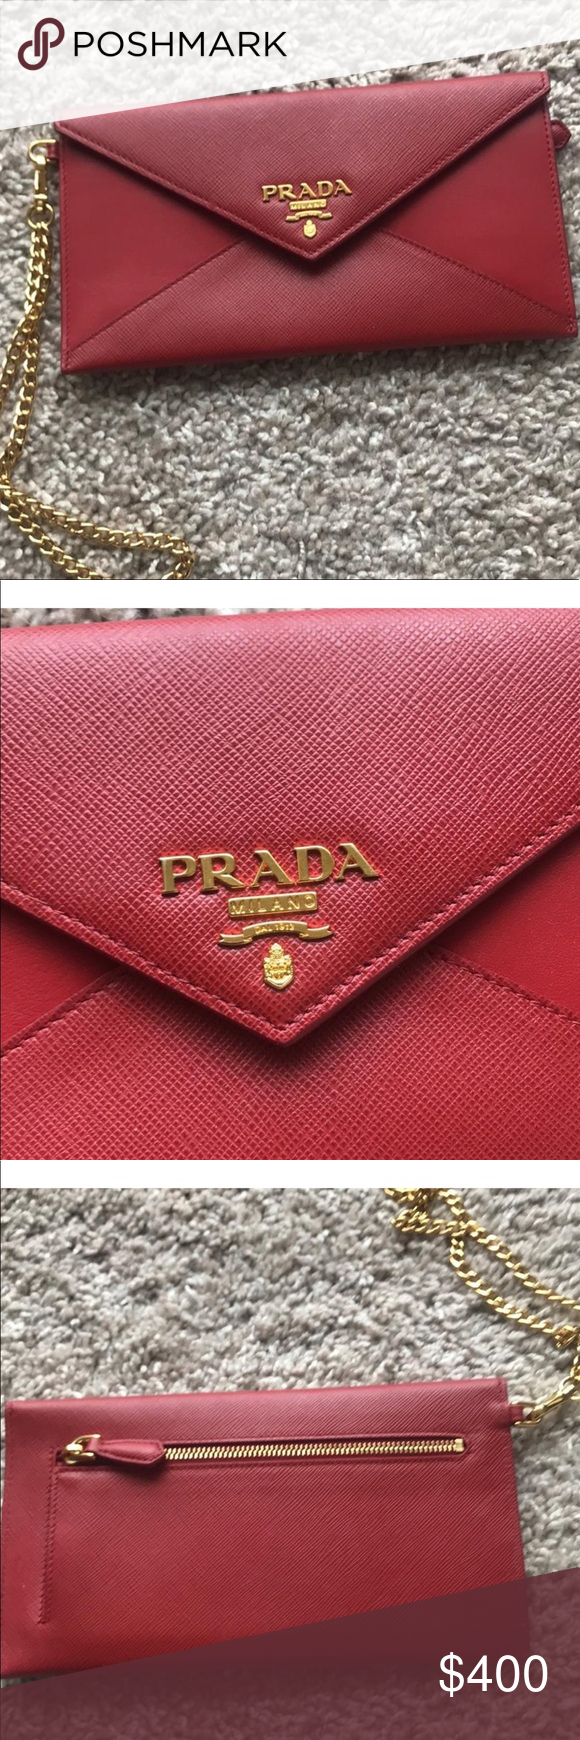 9b0058a33b1e Prada clutch Like brand new Comes with box and authenticity card Prada Bags  Clutches & Wristlets